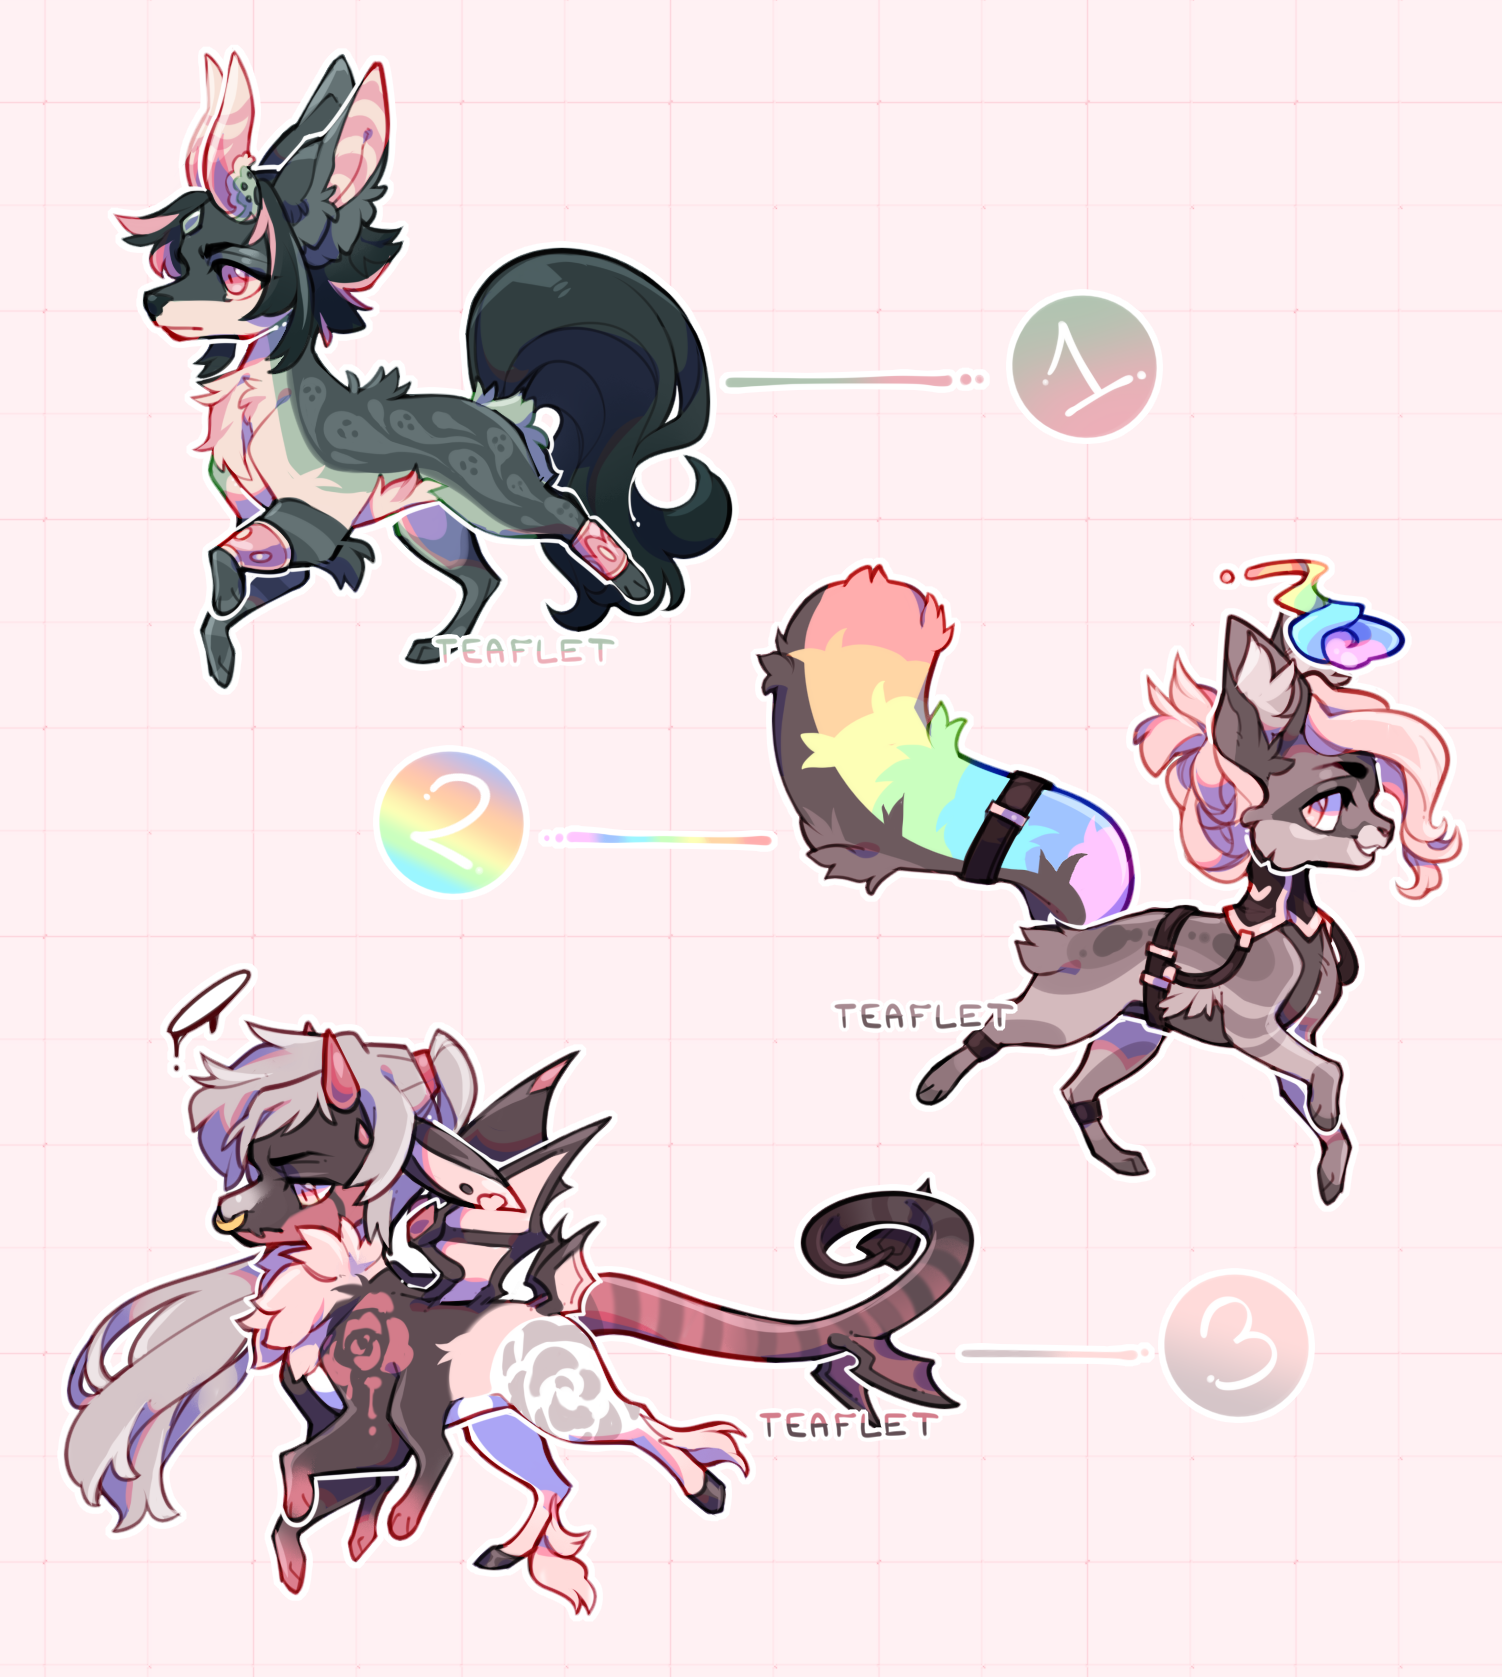 Adopt Auction [CLOSED]